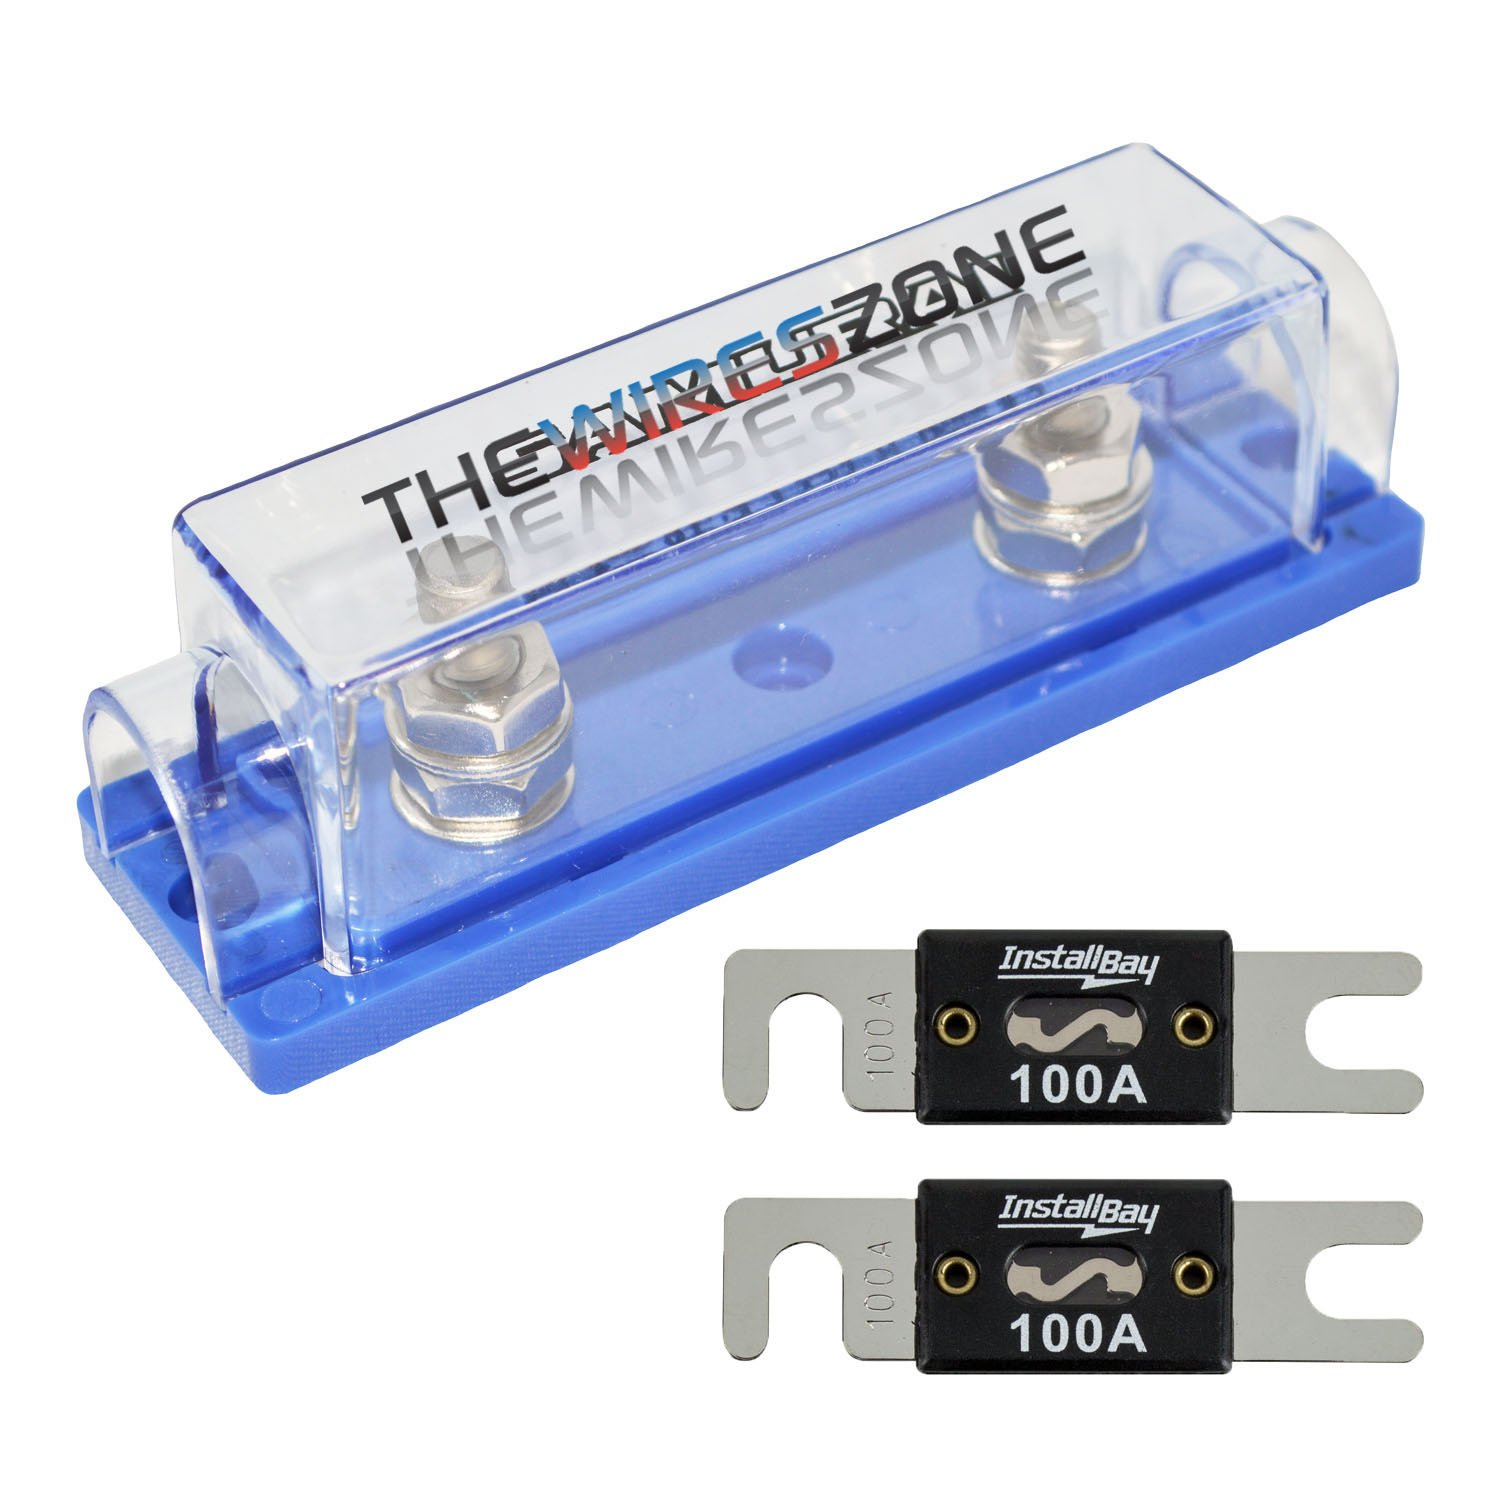 0//2 200A Inline ANL Fuse Holder 2 Pack 4 Gauge AWG ANL Fuse Block Holder with 200 Amp ANL Fuses for Car Audio Amplifier